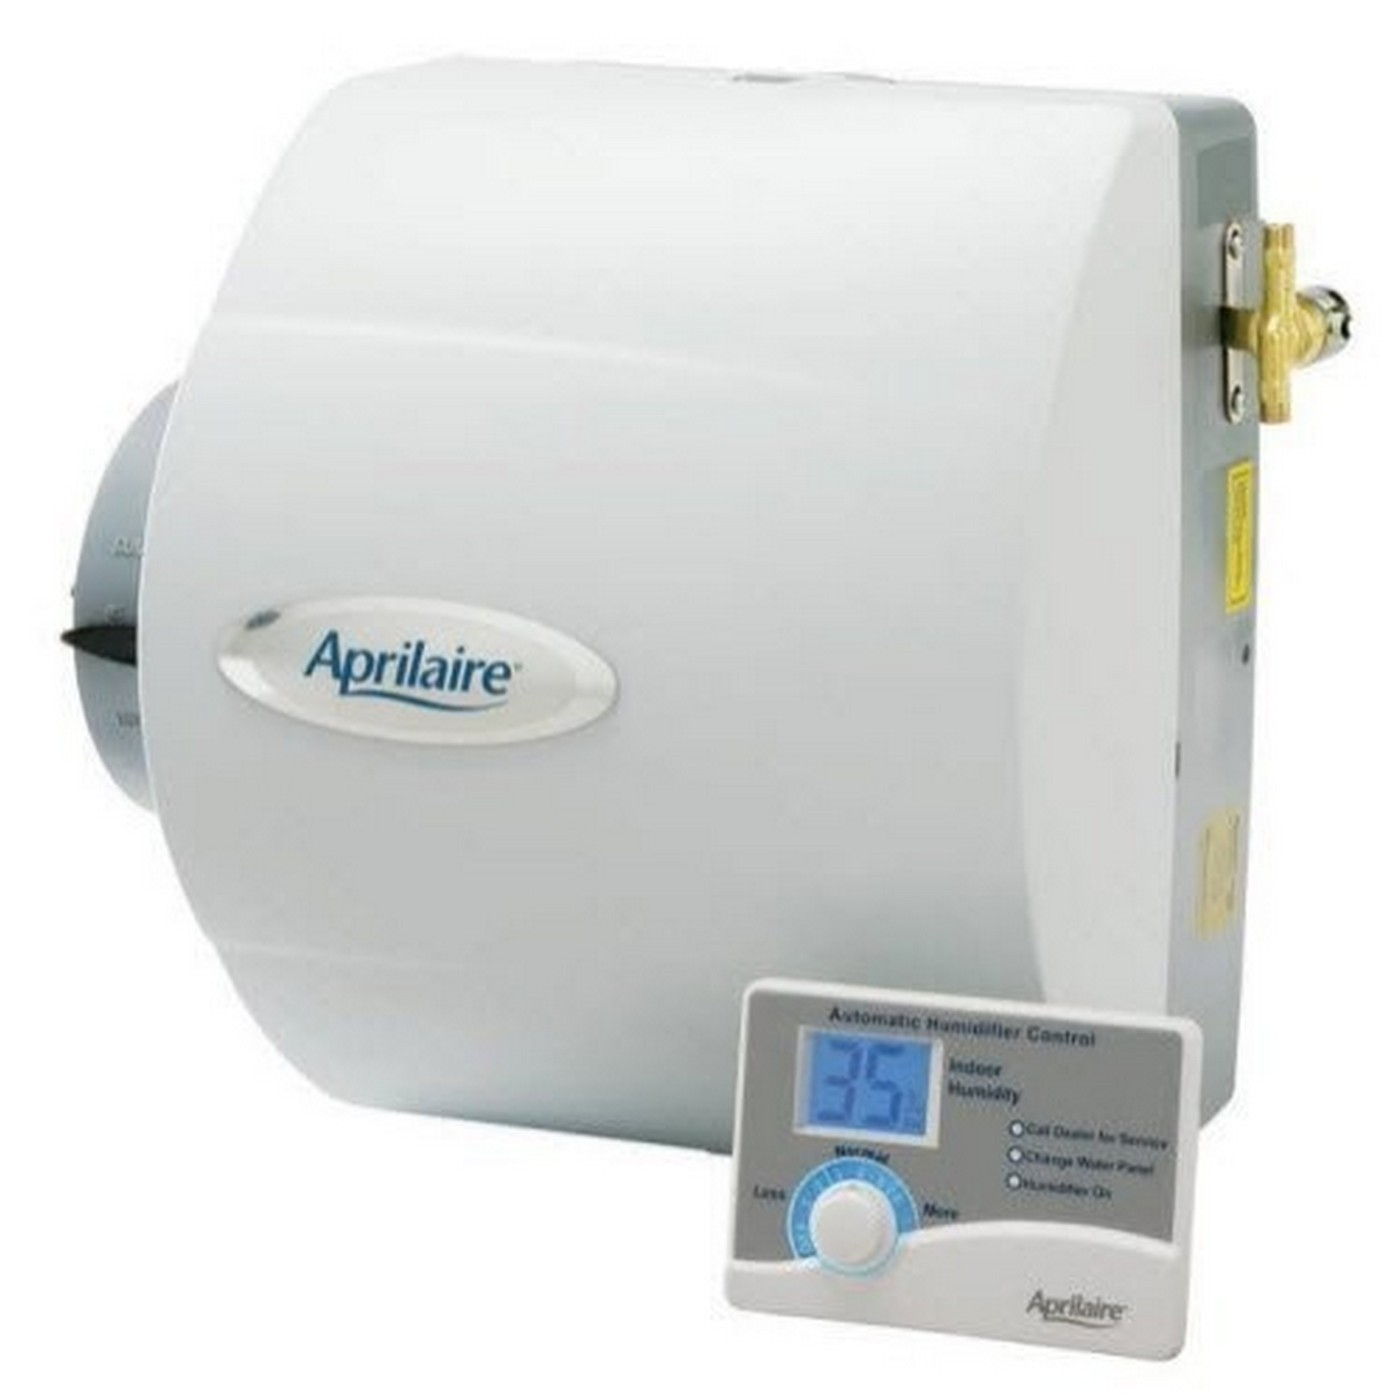 400 drainless automatic bypass humidifier the aprilaire 400 humidifier  #396492